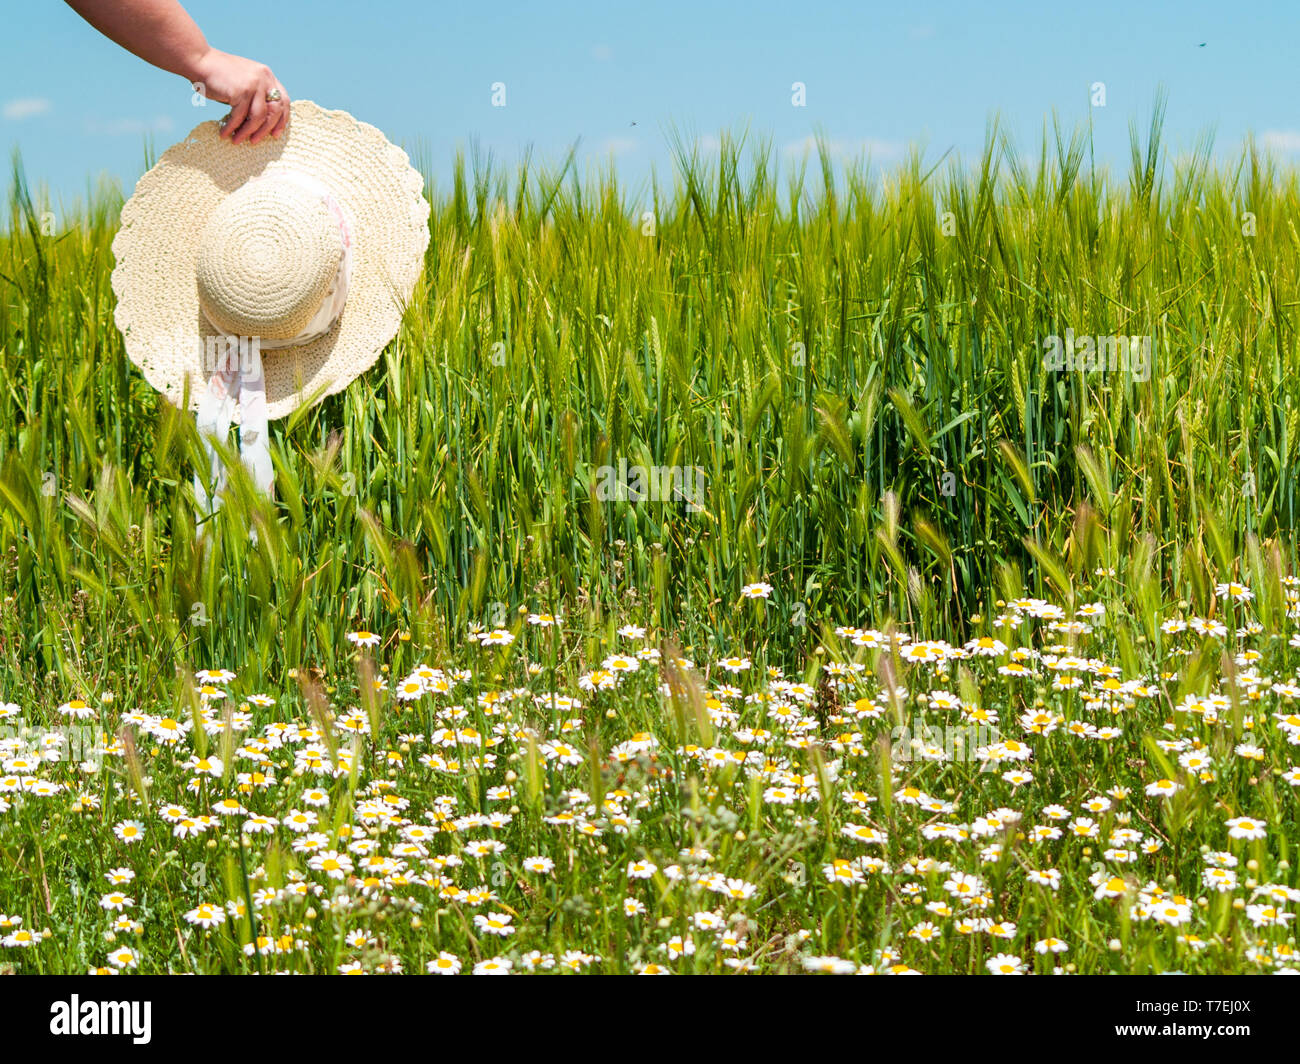 Unrecognizable with a straw hat in his hand in a farm field in spring barley person - Stock Image